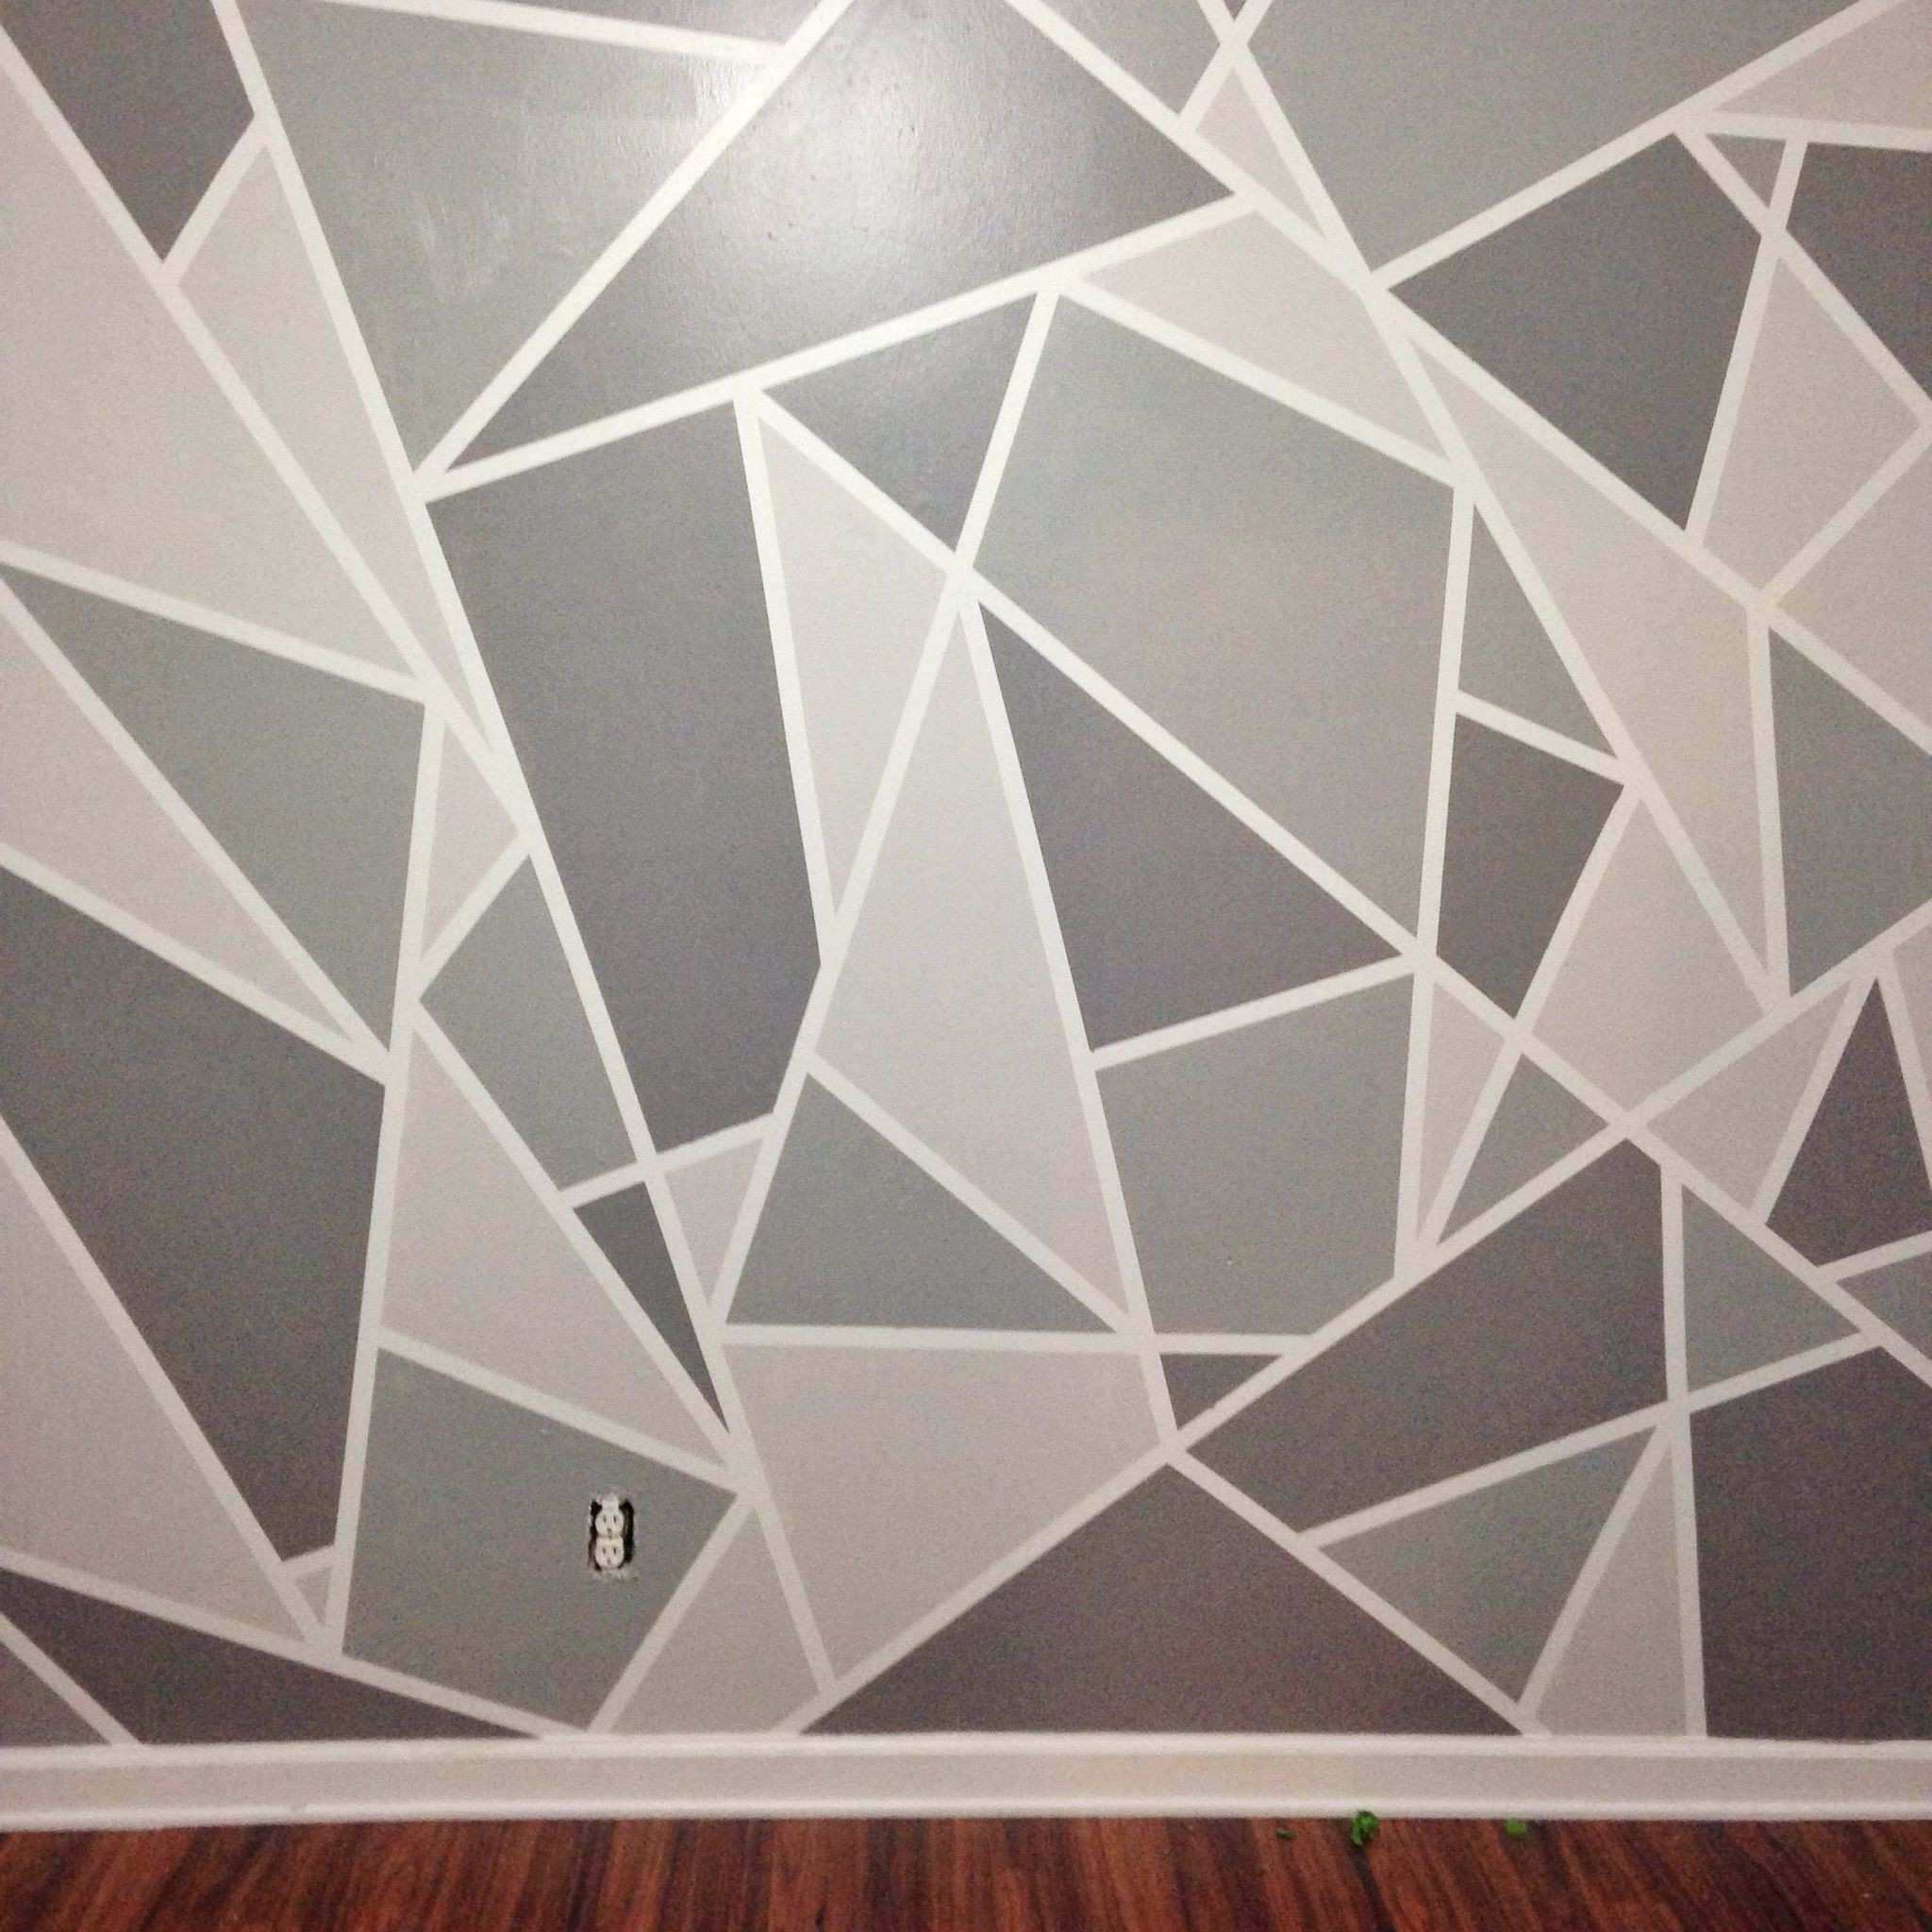 3 Dimensional Wall Art in Most Recent 3 Dimensional Wall Art Lovely Diy Faux Wallpaper Accent Wall